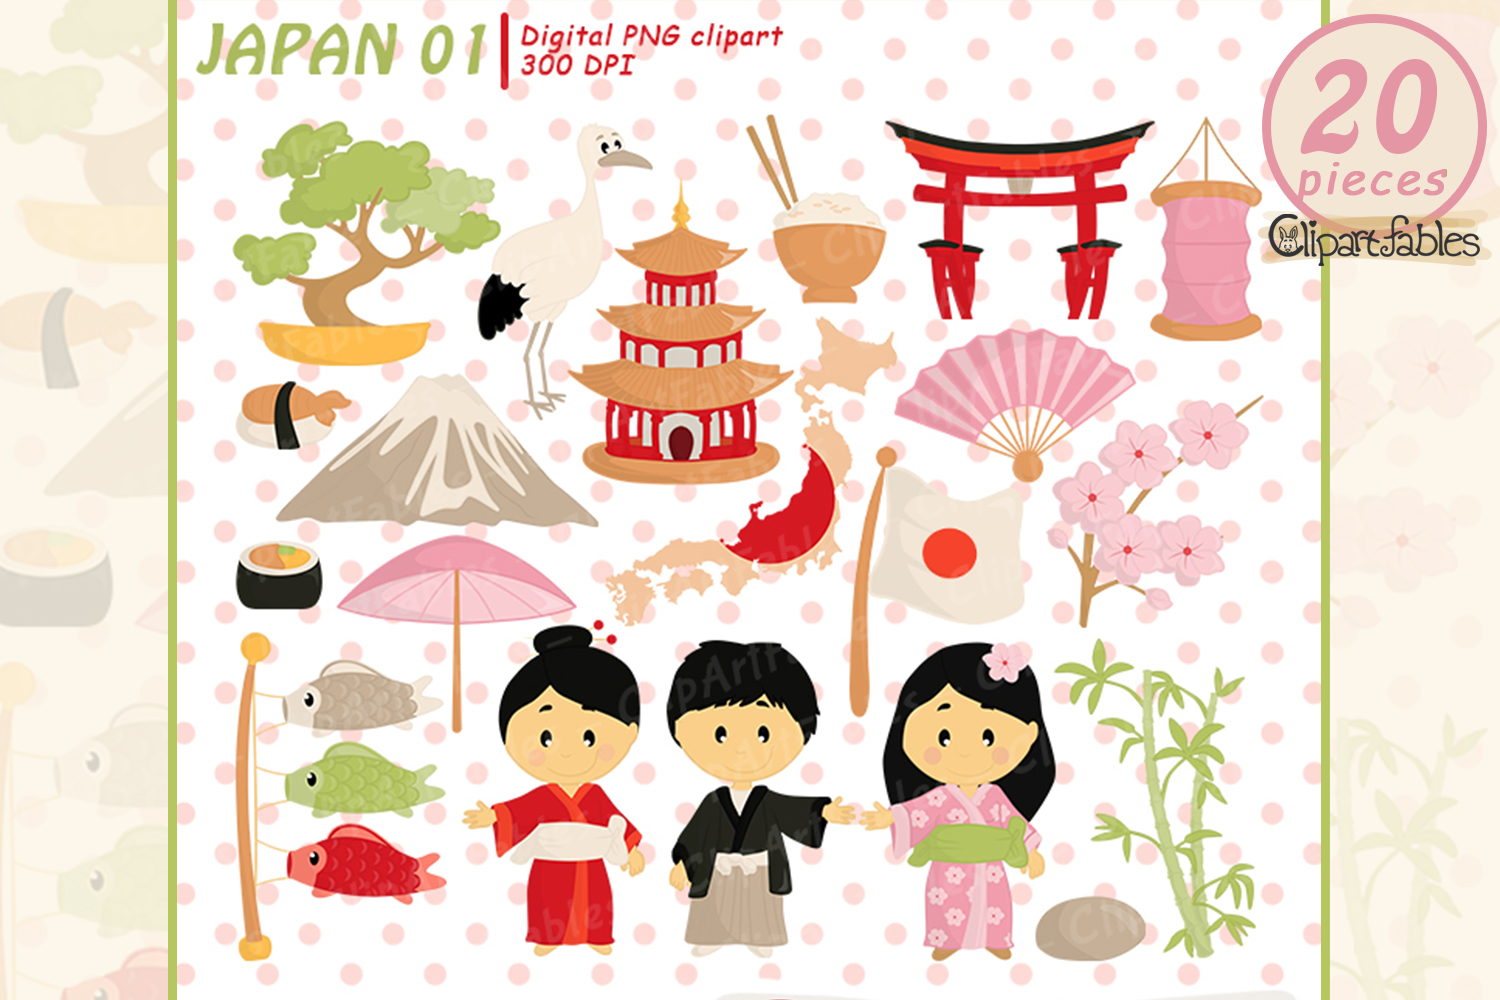 Japan Tradition clipart, japanese clip art, cute travel art example image 1